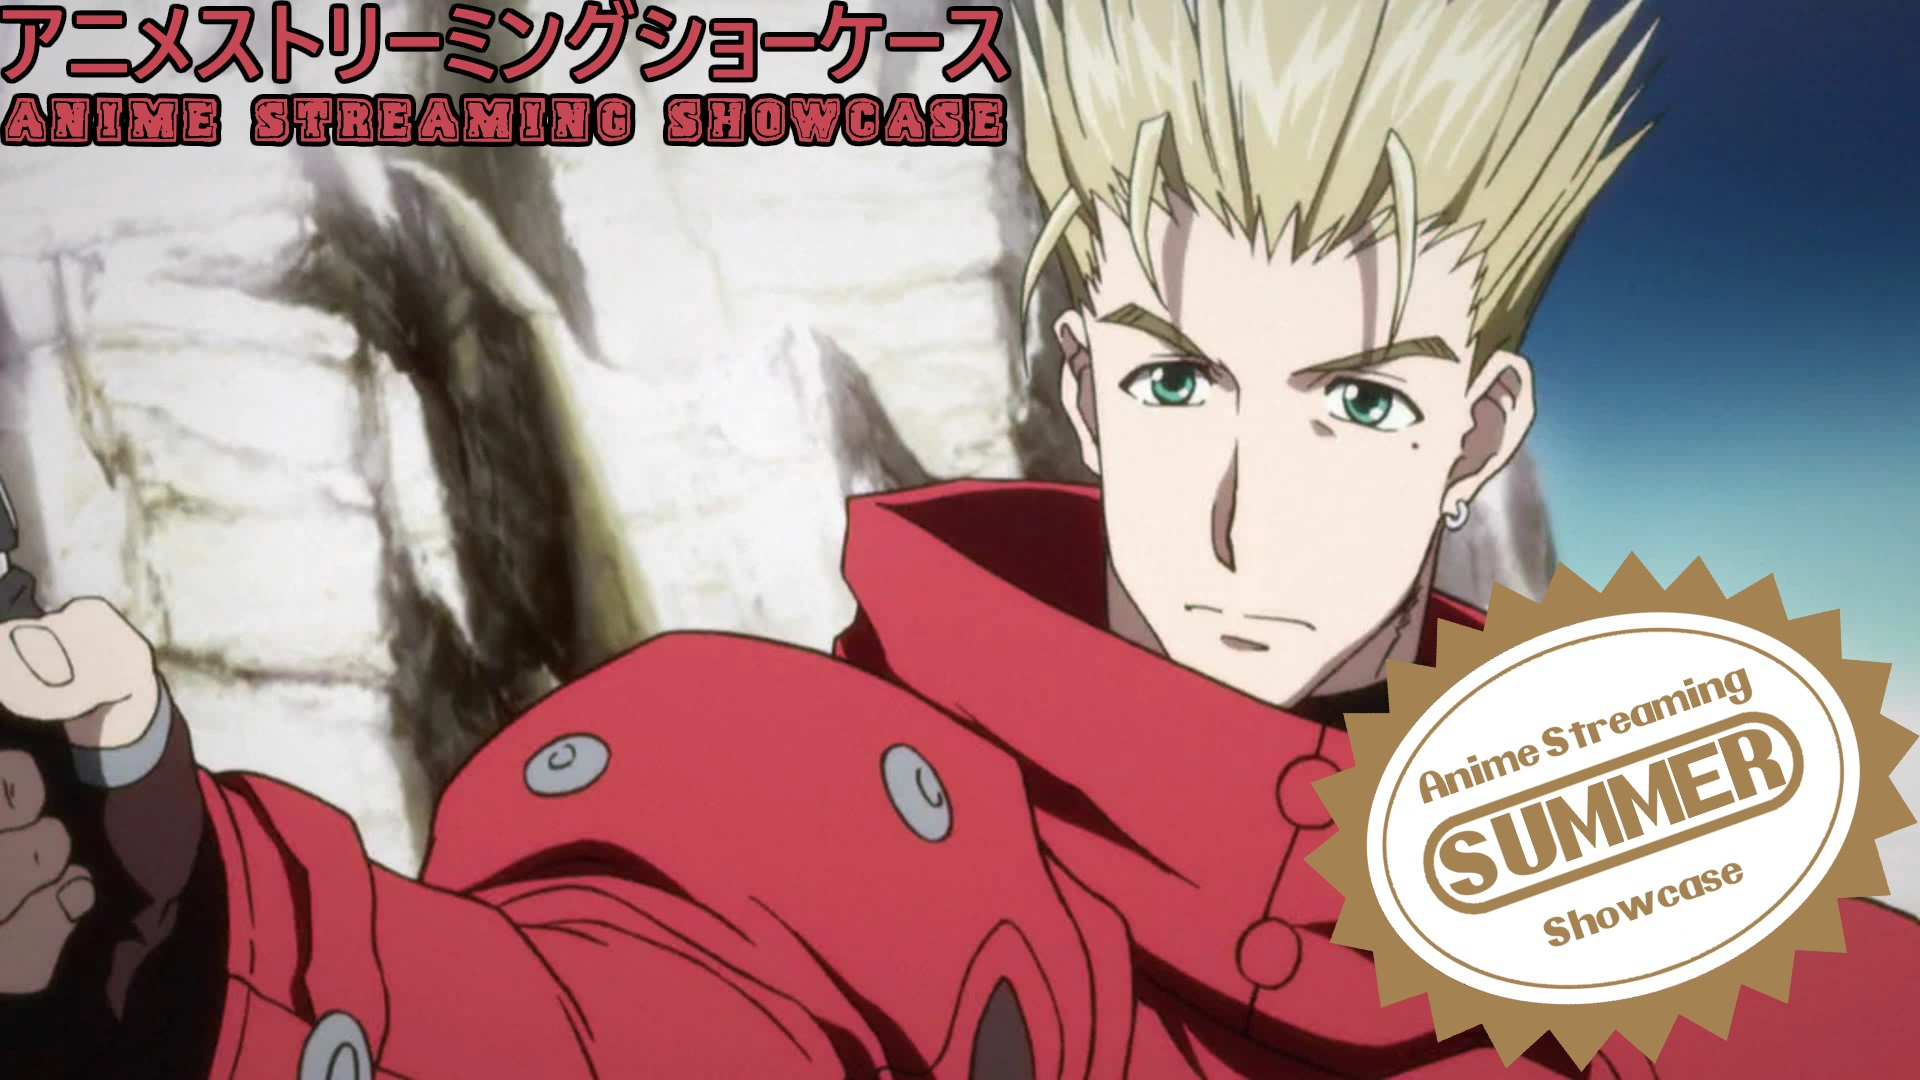 Trigun, Anime Streaming Showcase, A.S.S. ASS, anime, manga, Yasuhiro Nightow, youtube, video,,